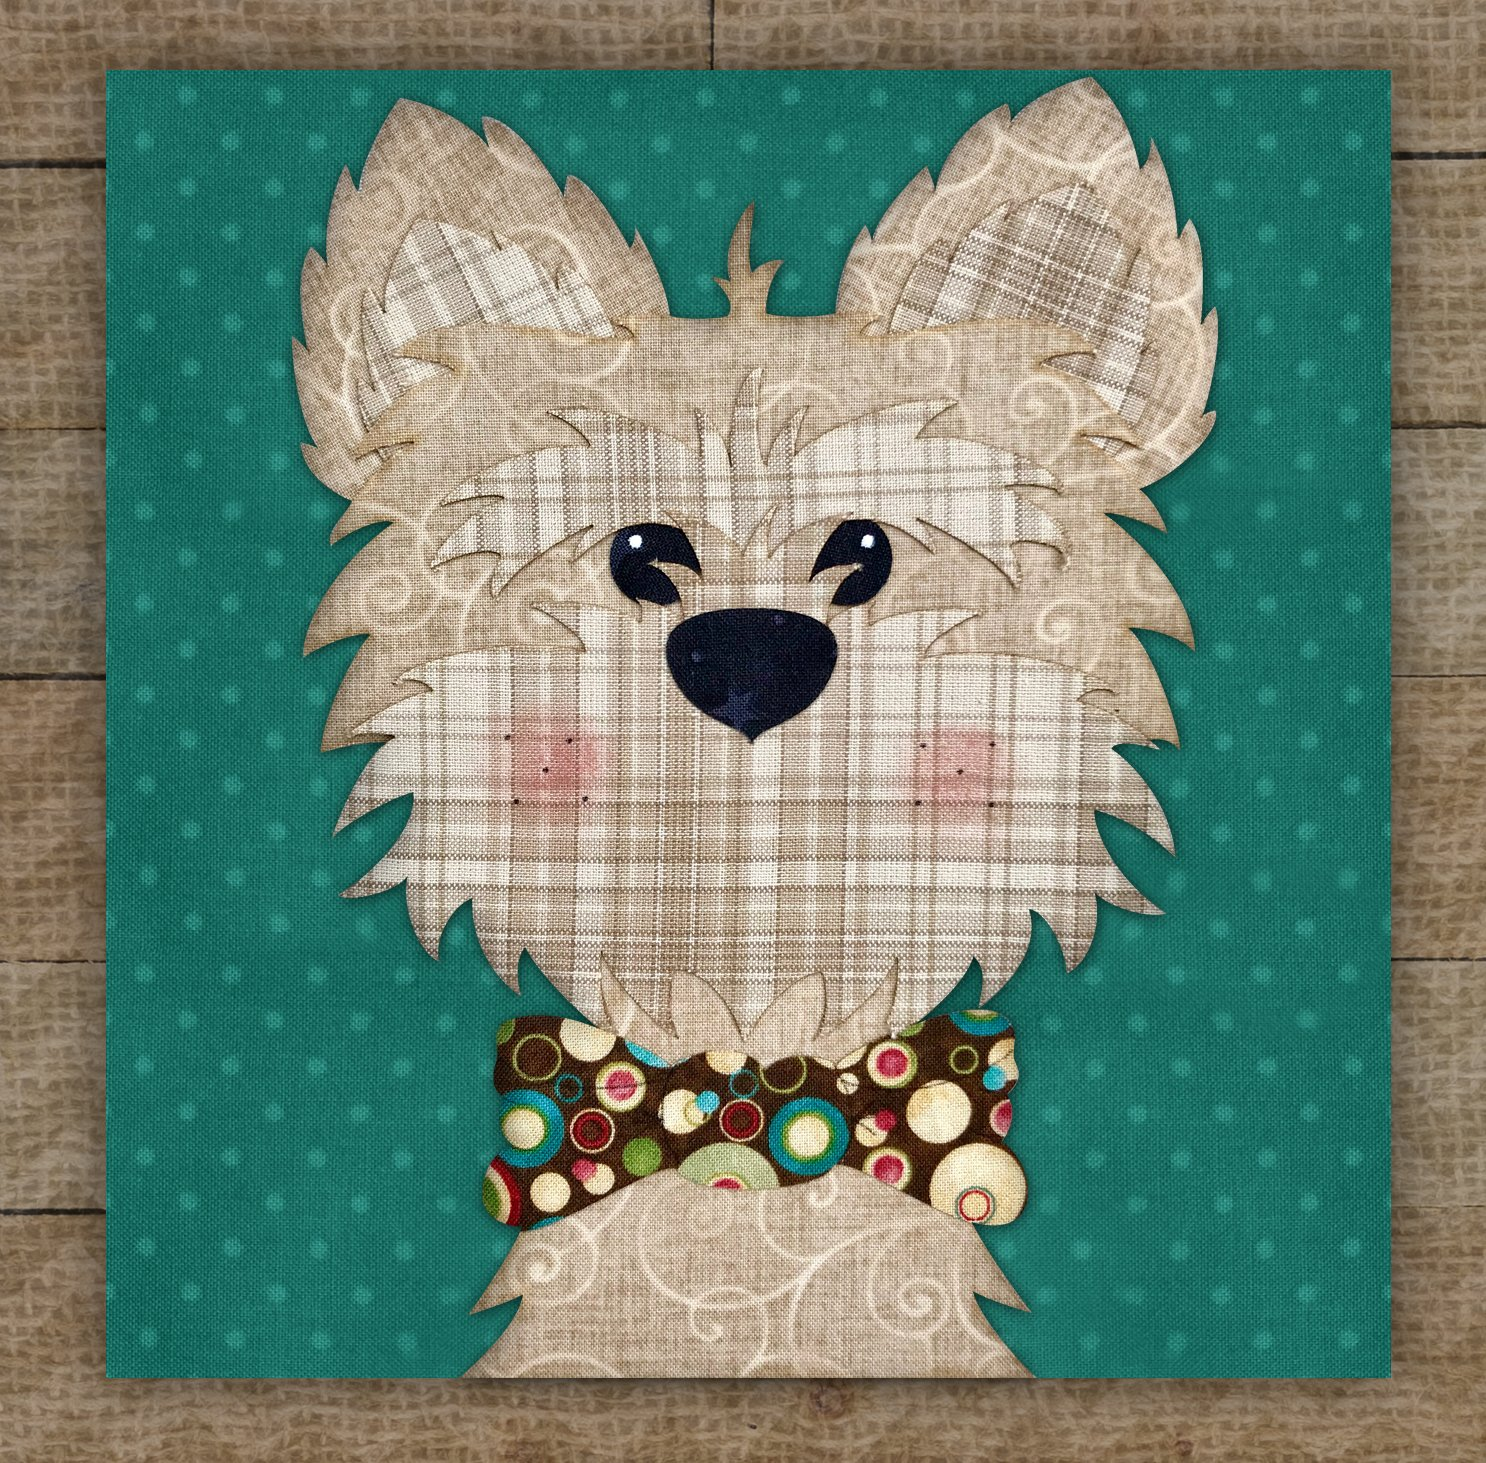 Cairn Terrier - Pattern